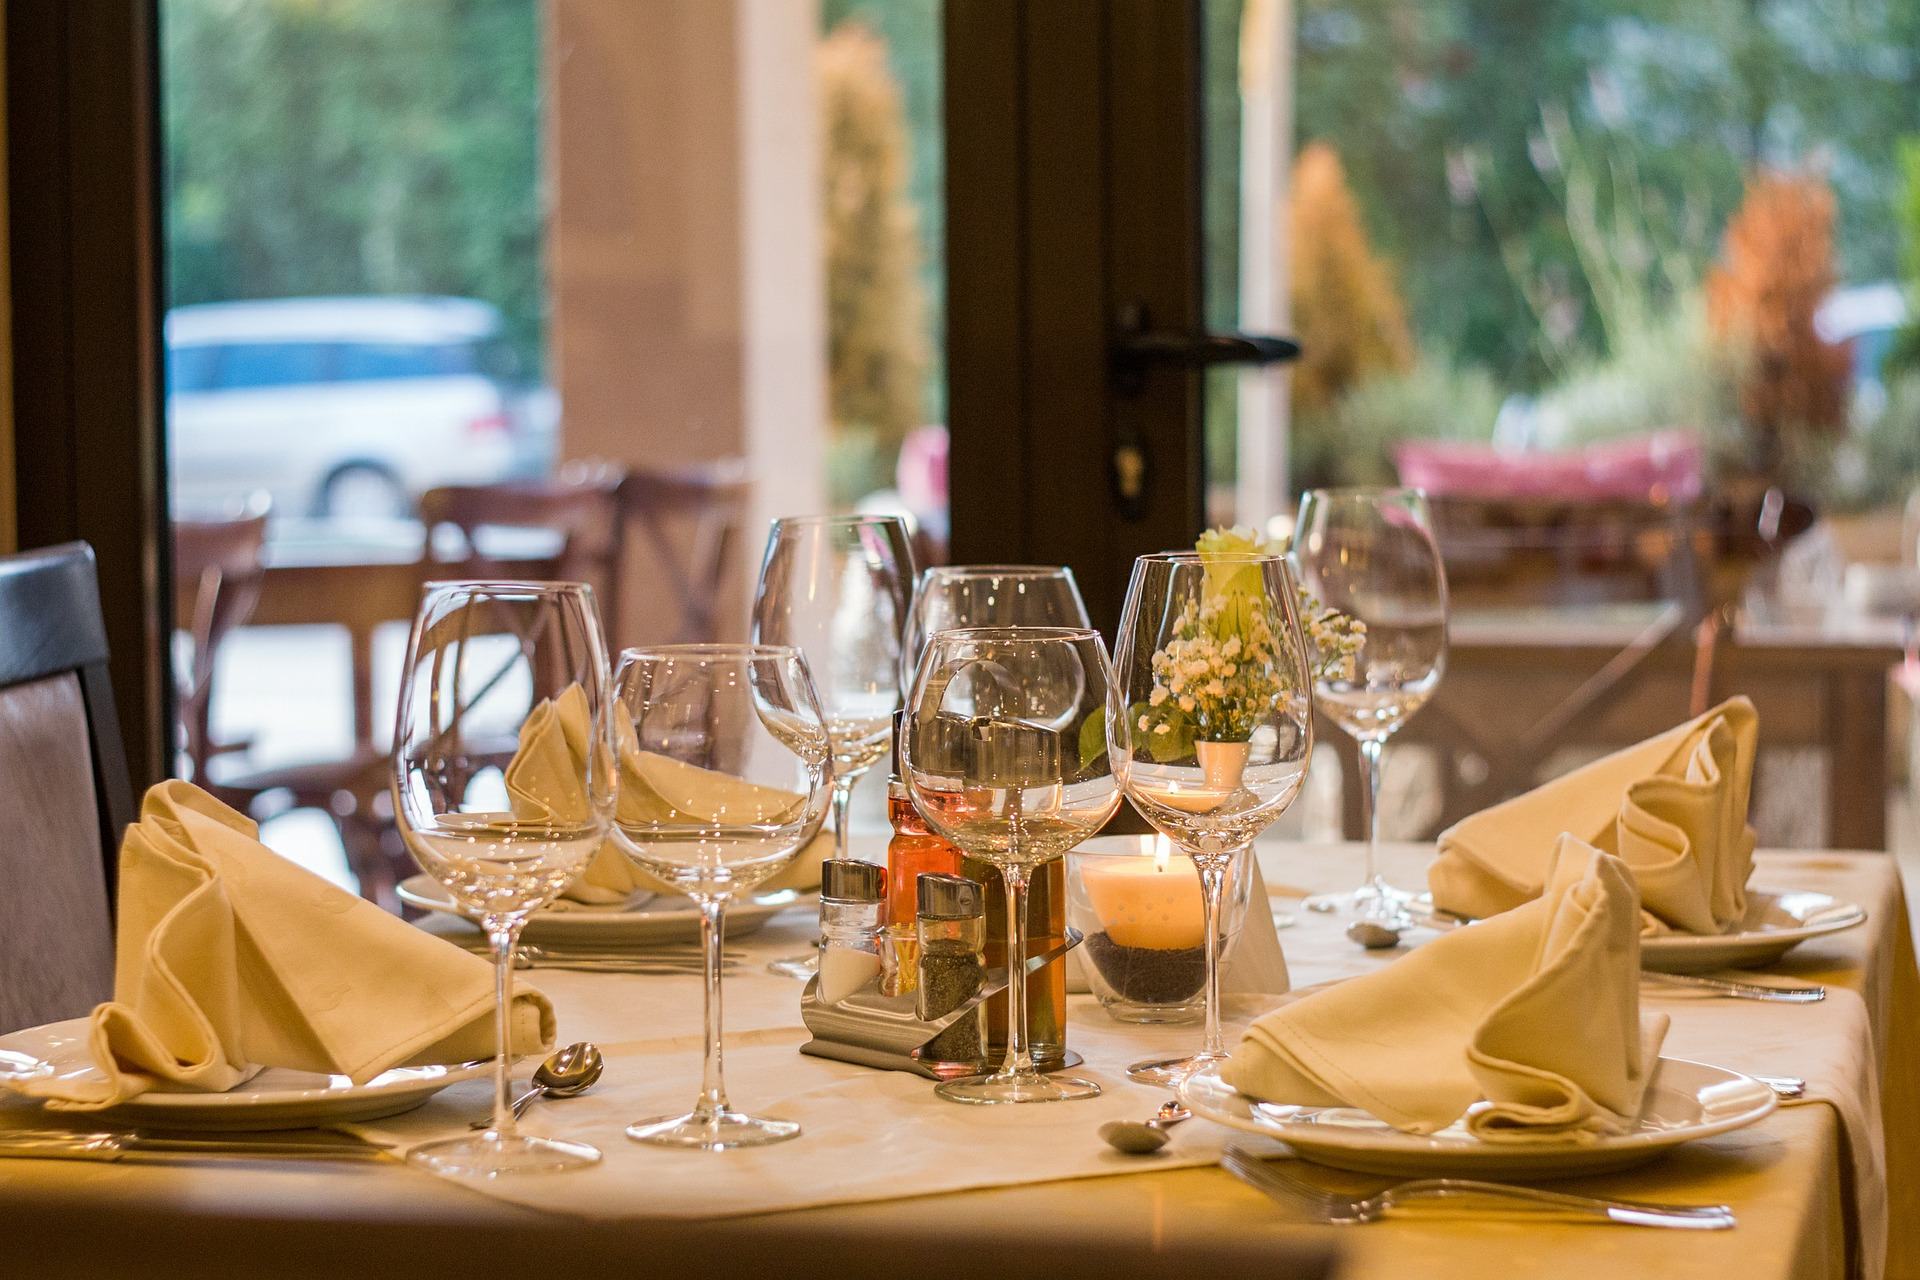 New reservation software for hospitality establishments by Cozy Restaurant Reservation